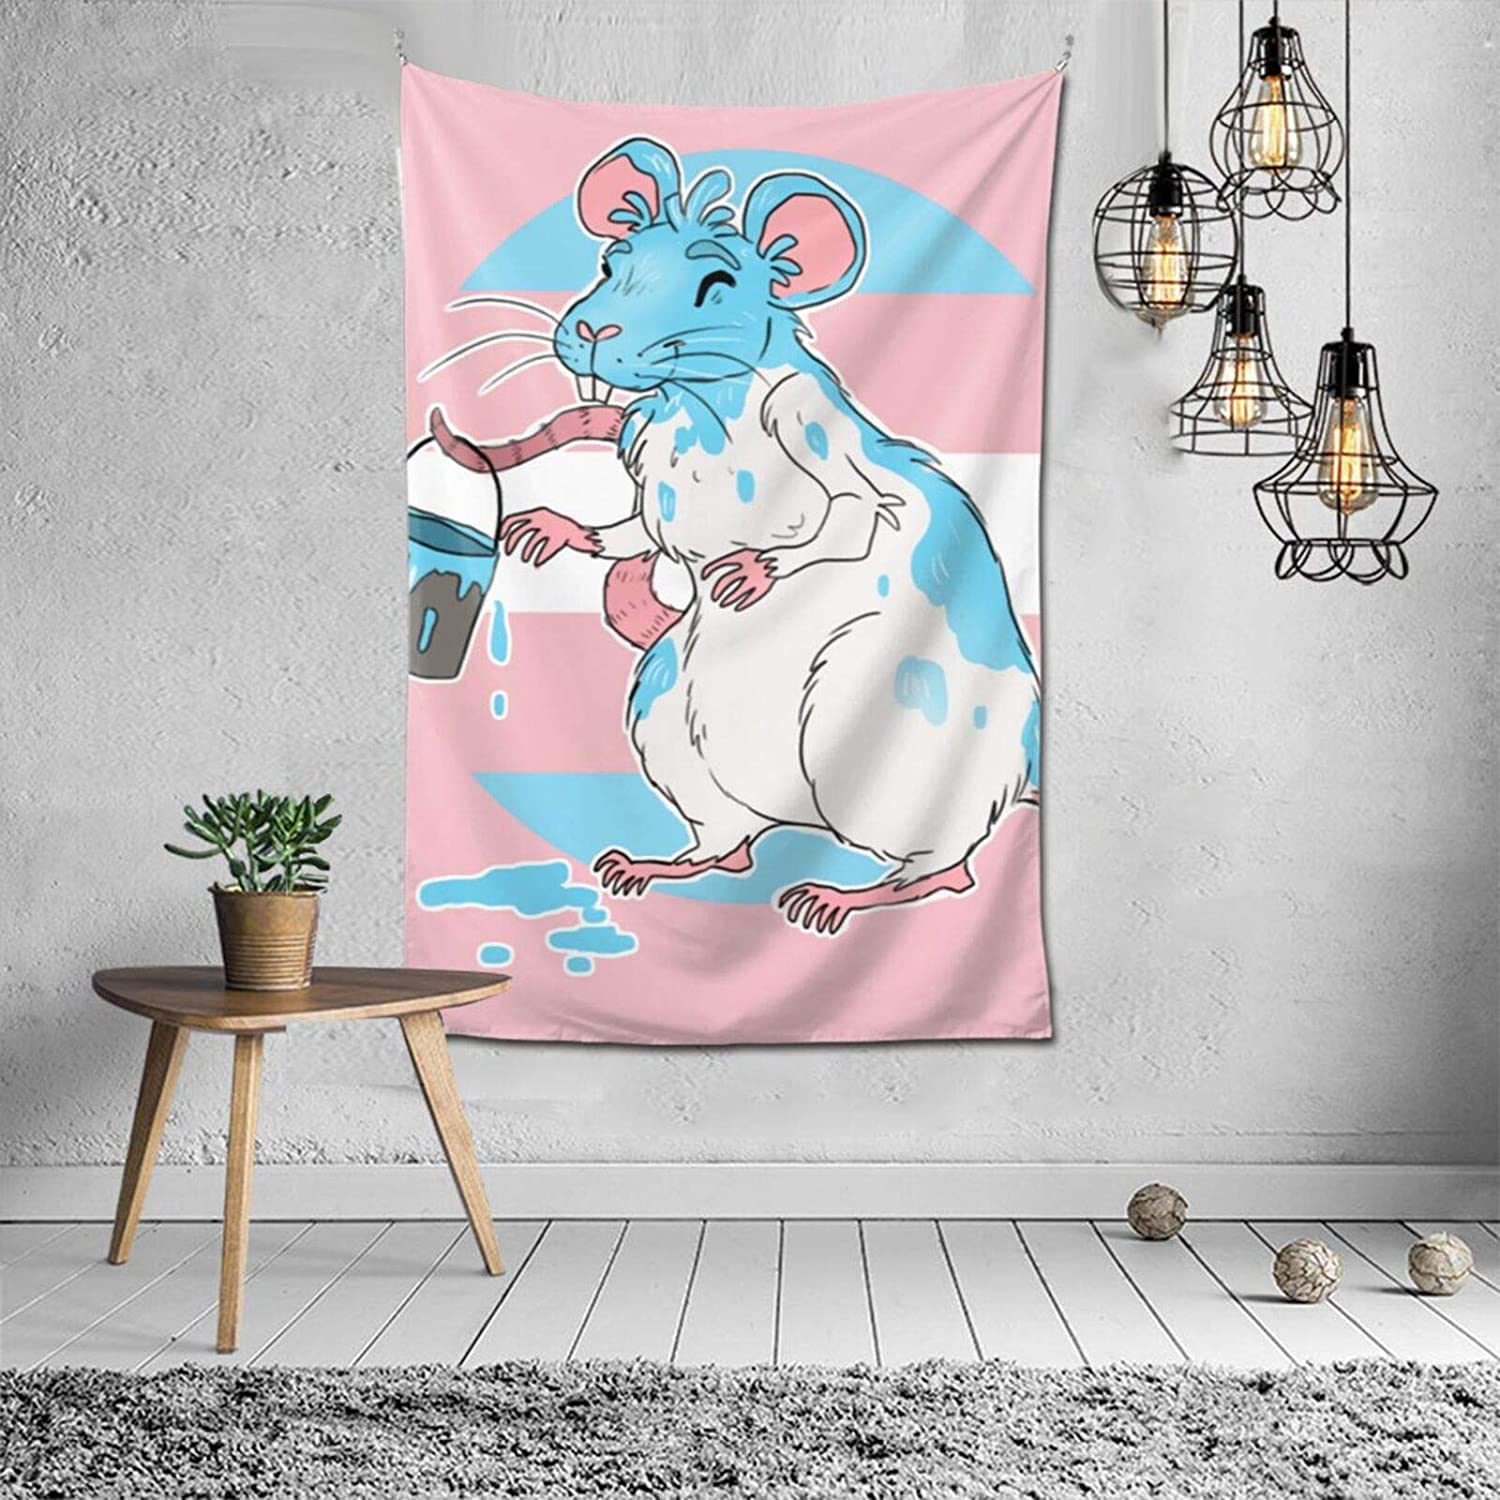 BLACK SP Trans Pride Rat Home Decoration Vintage Hippie Tapestry for Room Wall Hanging Mural Bedroom Living Room Blanket Dormitory Fashion Wall Art 60x40in